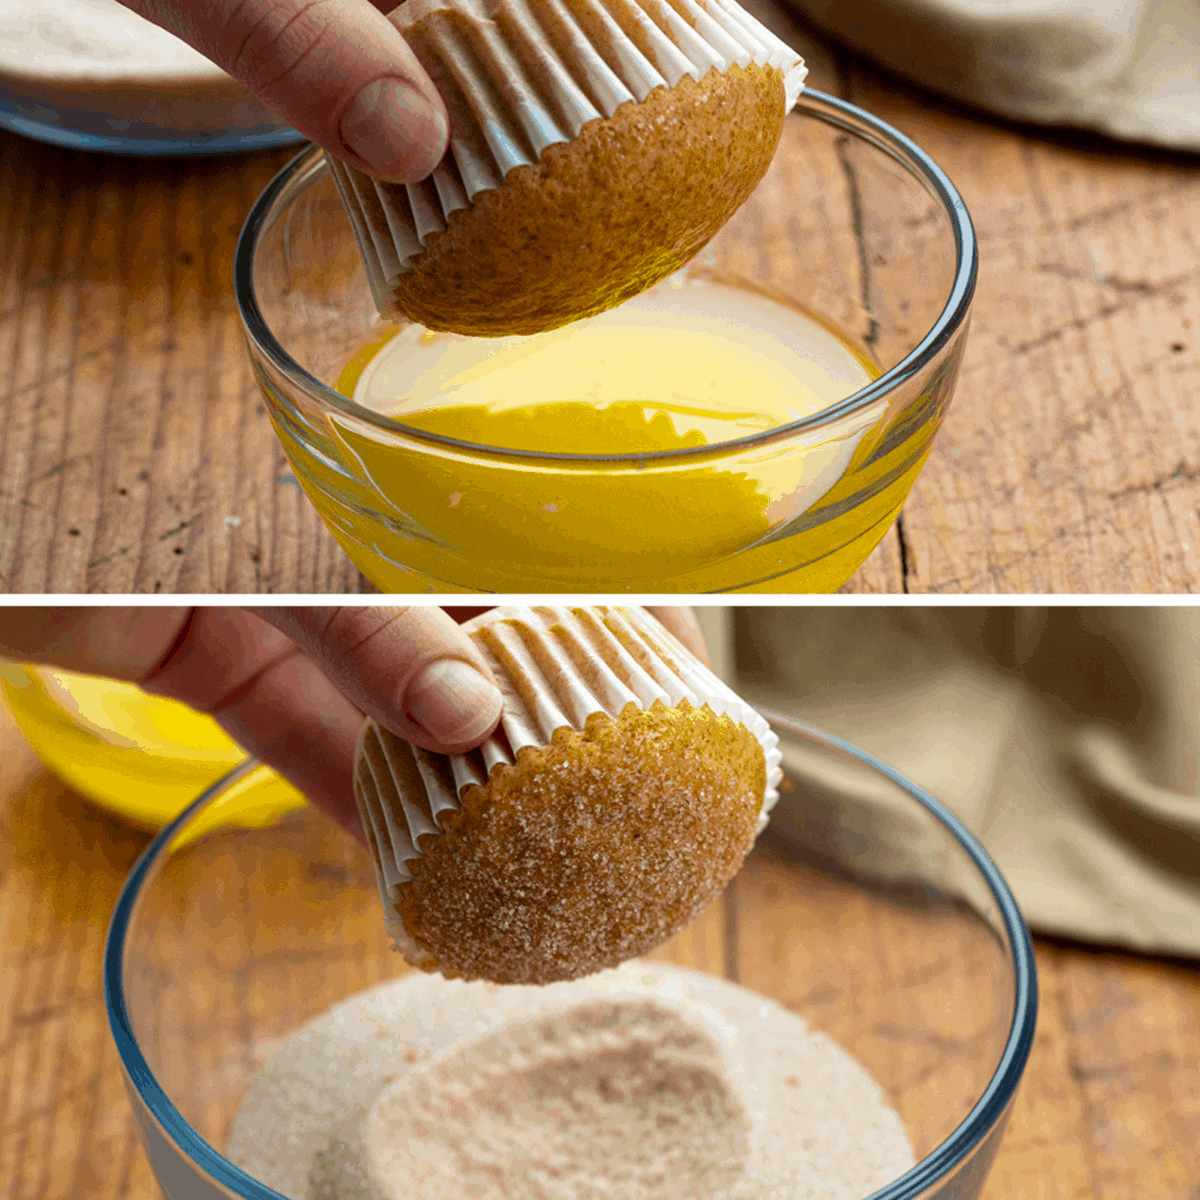 Dipping Apple Cider Muffins in Butter Then Cinnamon Sugar